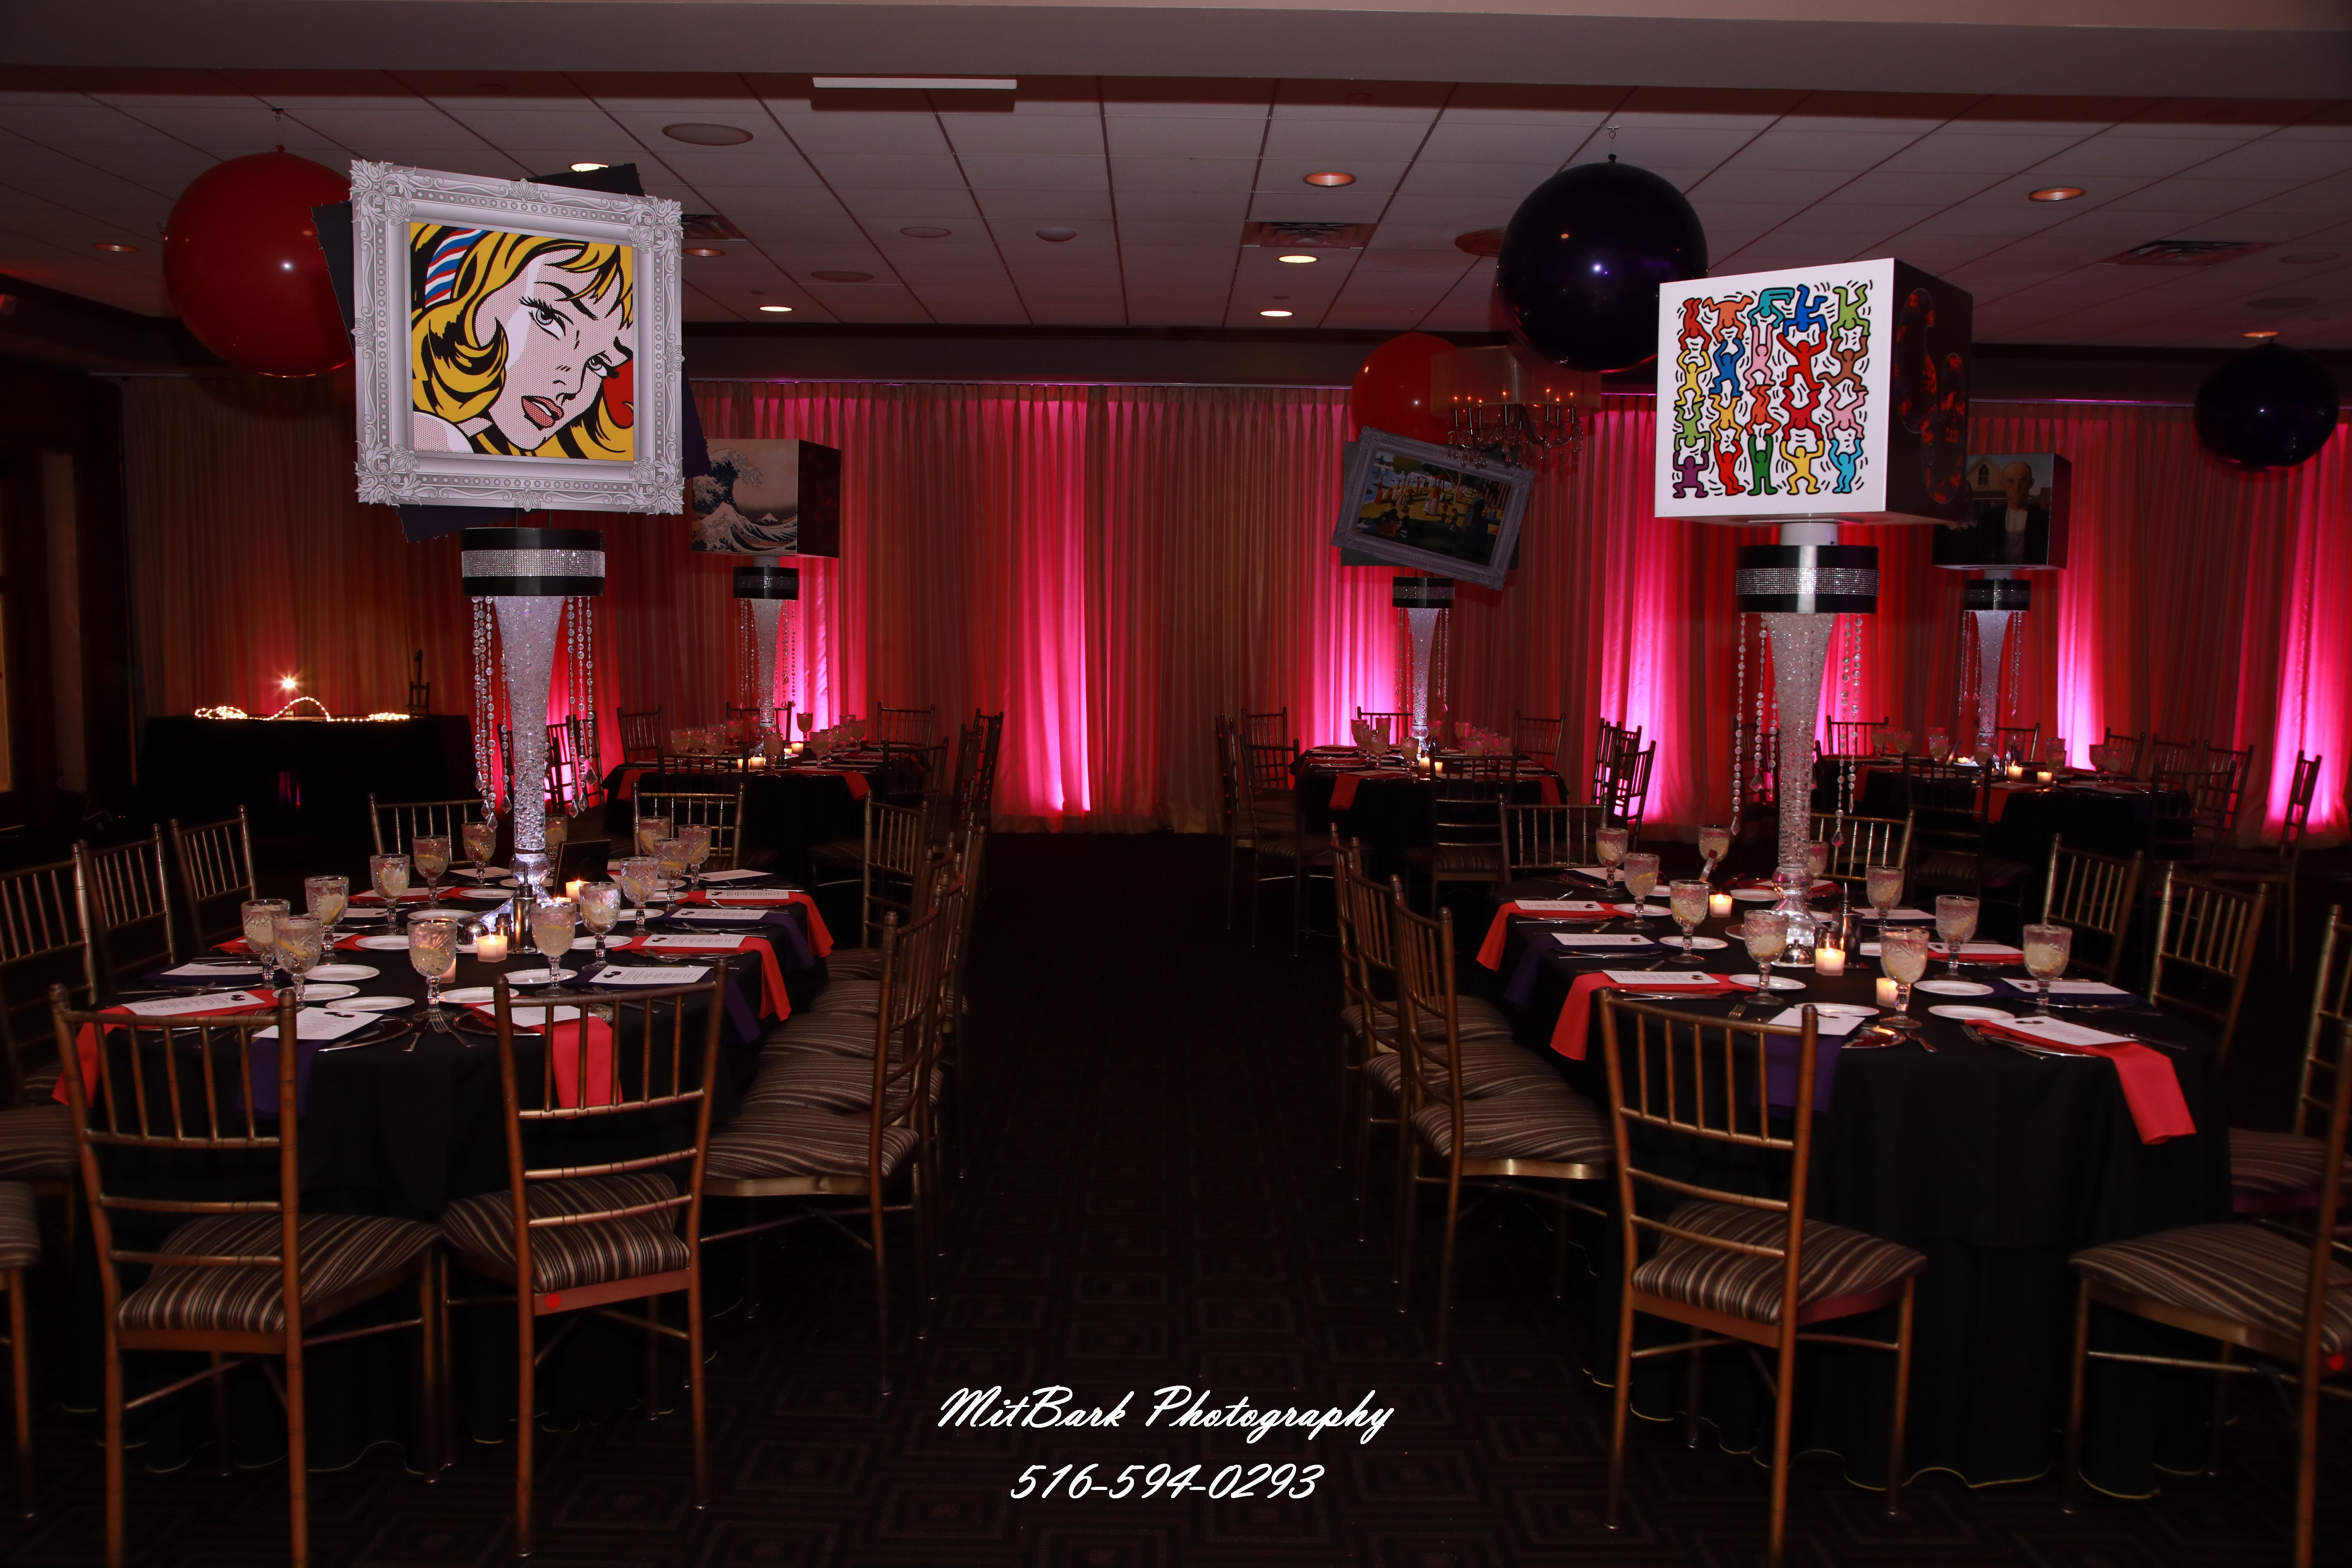 Themed Art Table Decor In 2020 Table Decorations Art Table Bat Mitzvah